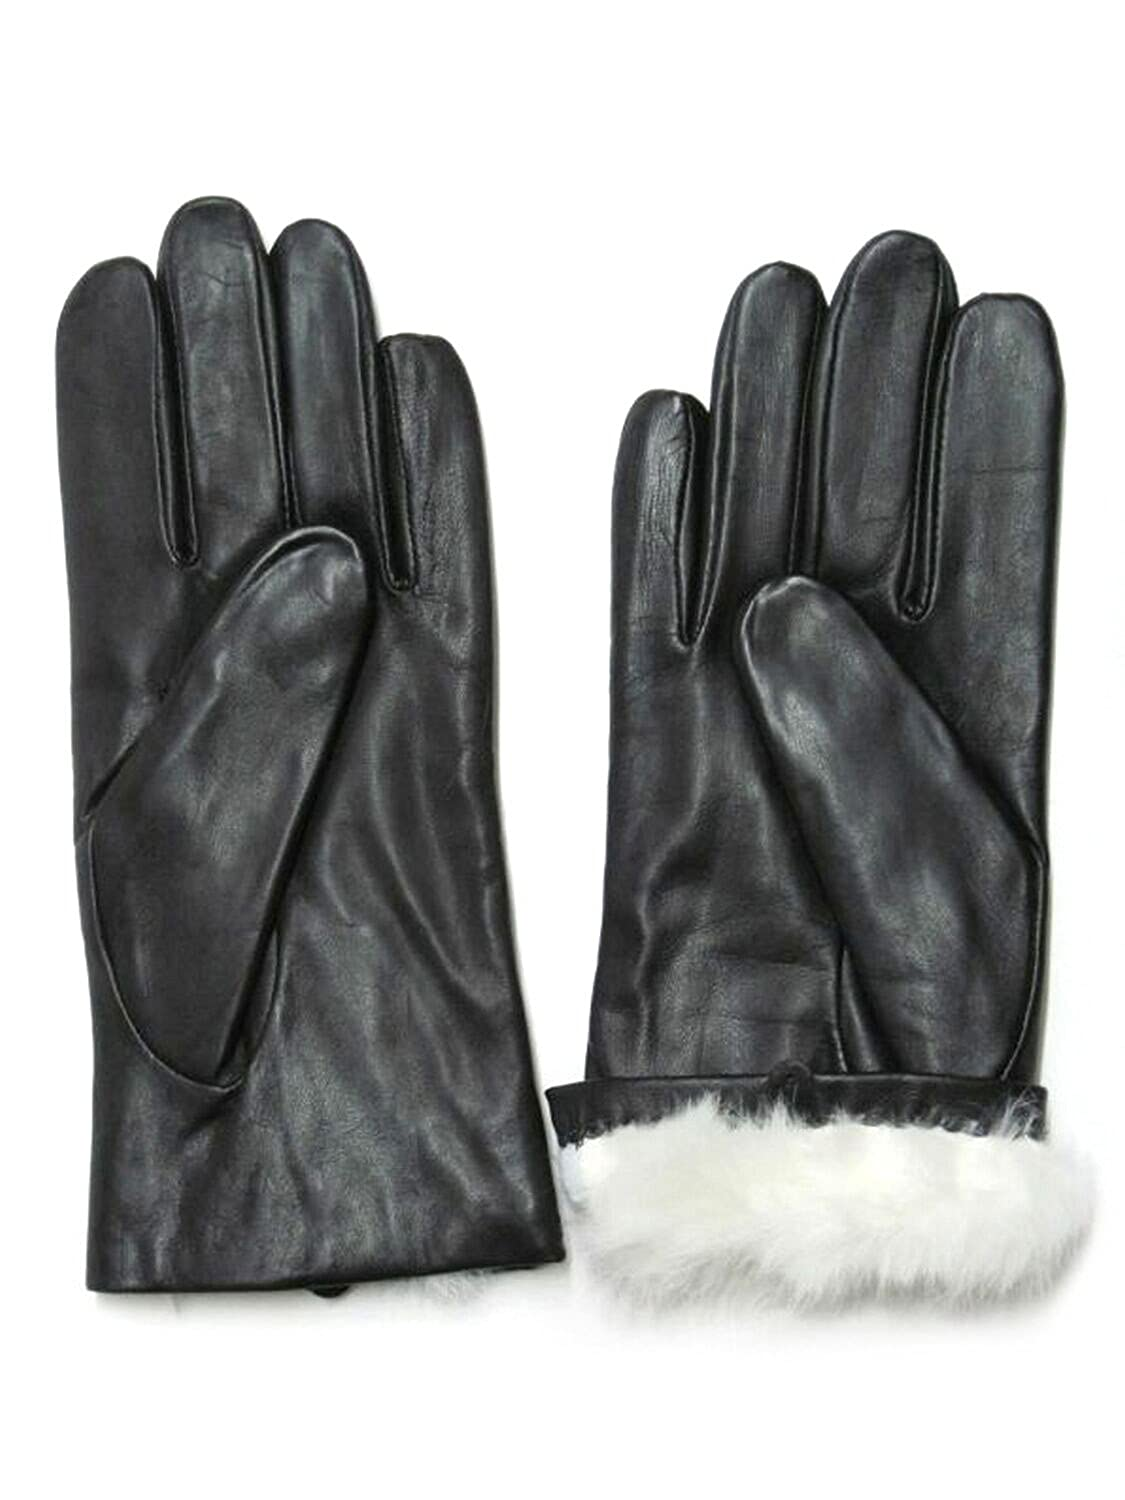 Leather driving gloves macys - Fownes Women S Rabbit Fur Lined Black Napa Leather Gloves 6 5 S At Amazon Women S Clothing Store Cold Weather Gloves